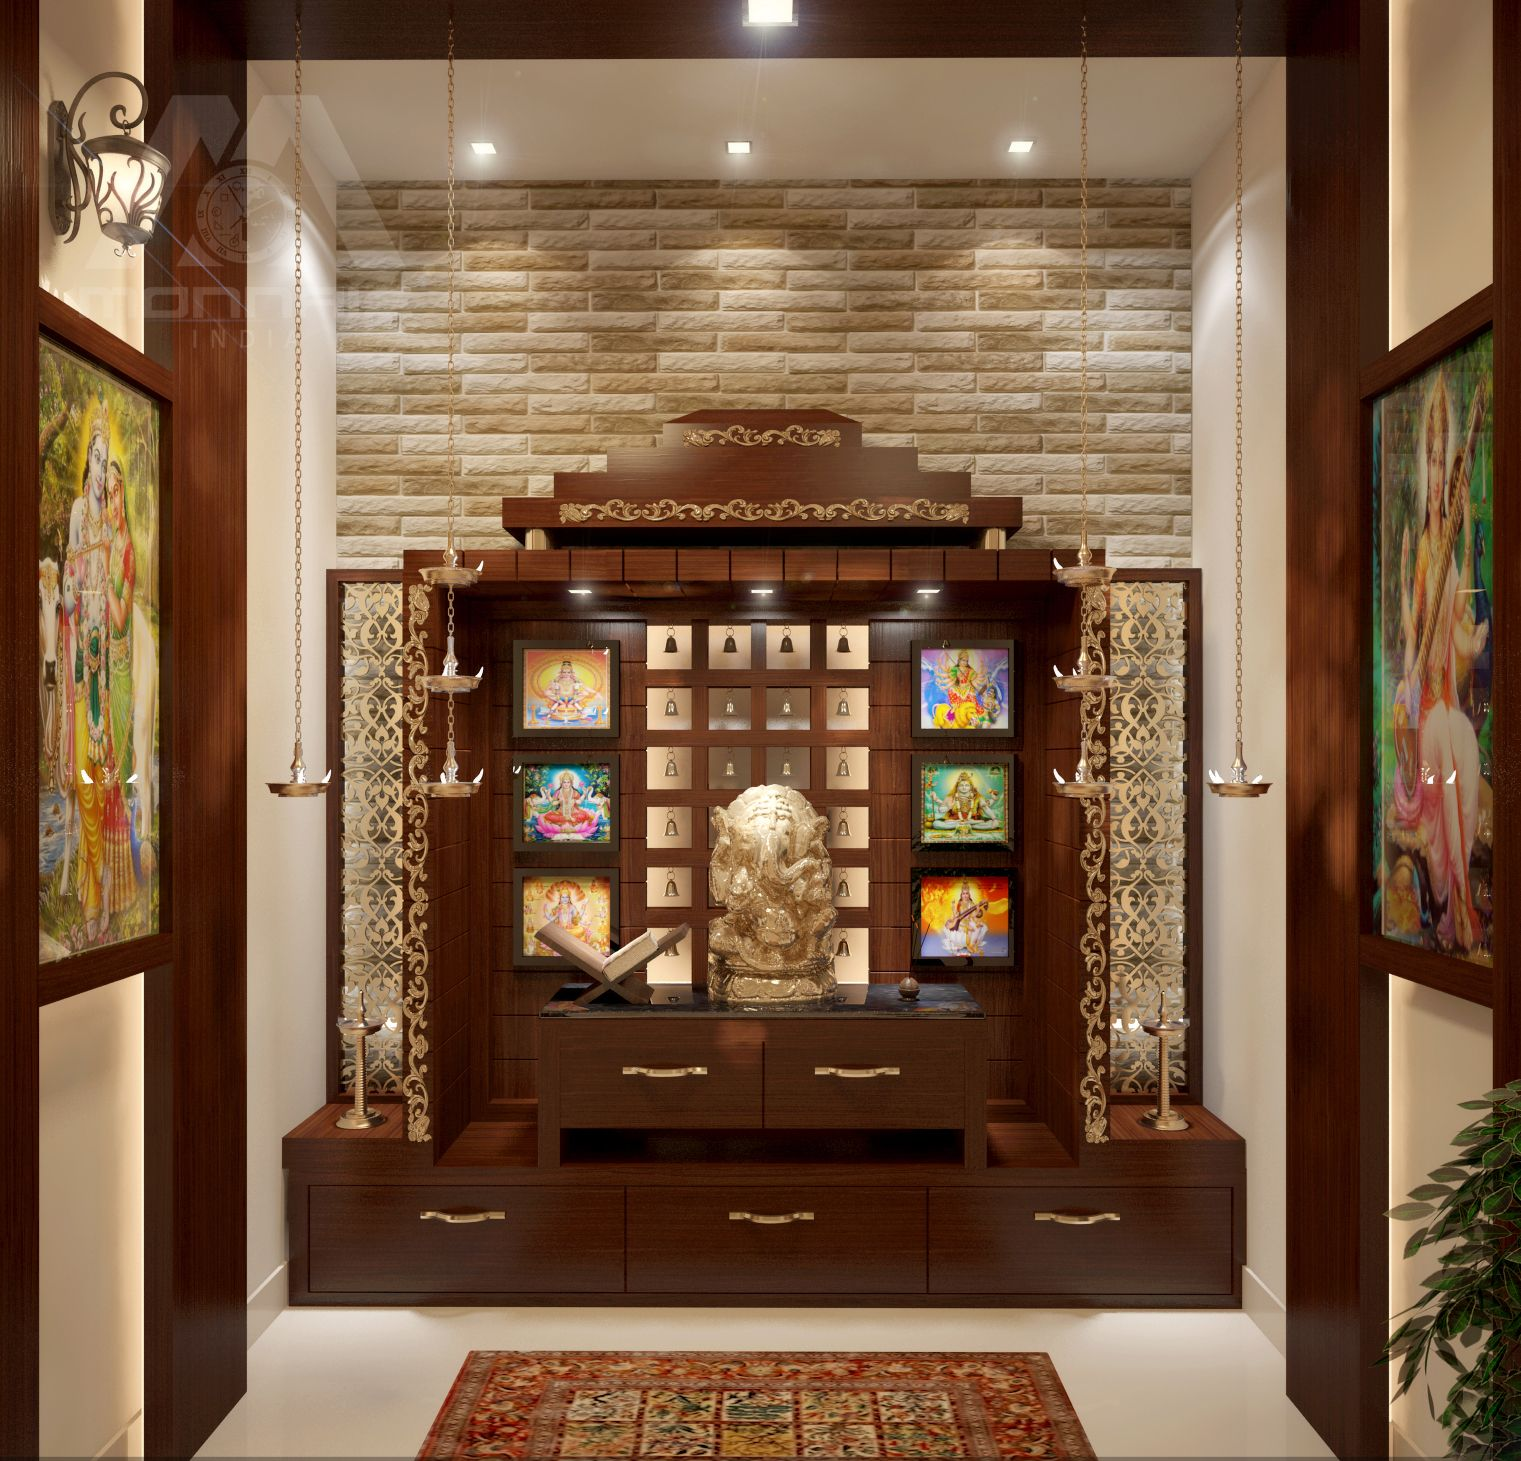 Best Kitchen Gallery: A Classic Pooja Room… Visit Monnaie In Or of Pooja Room Designs on rachelxblog.com